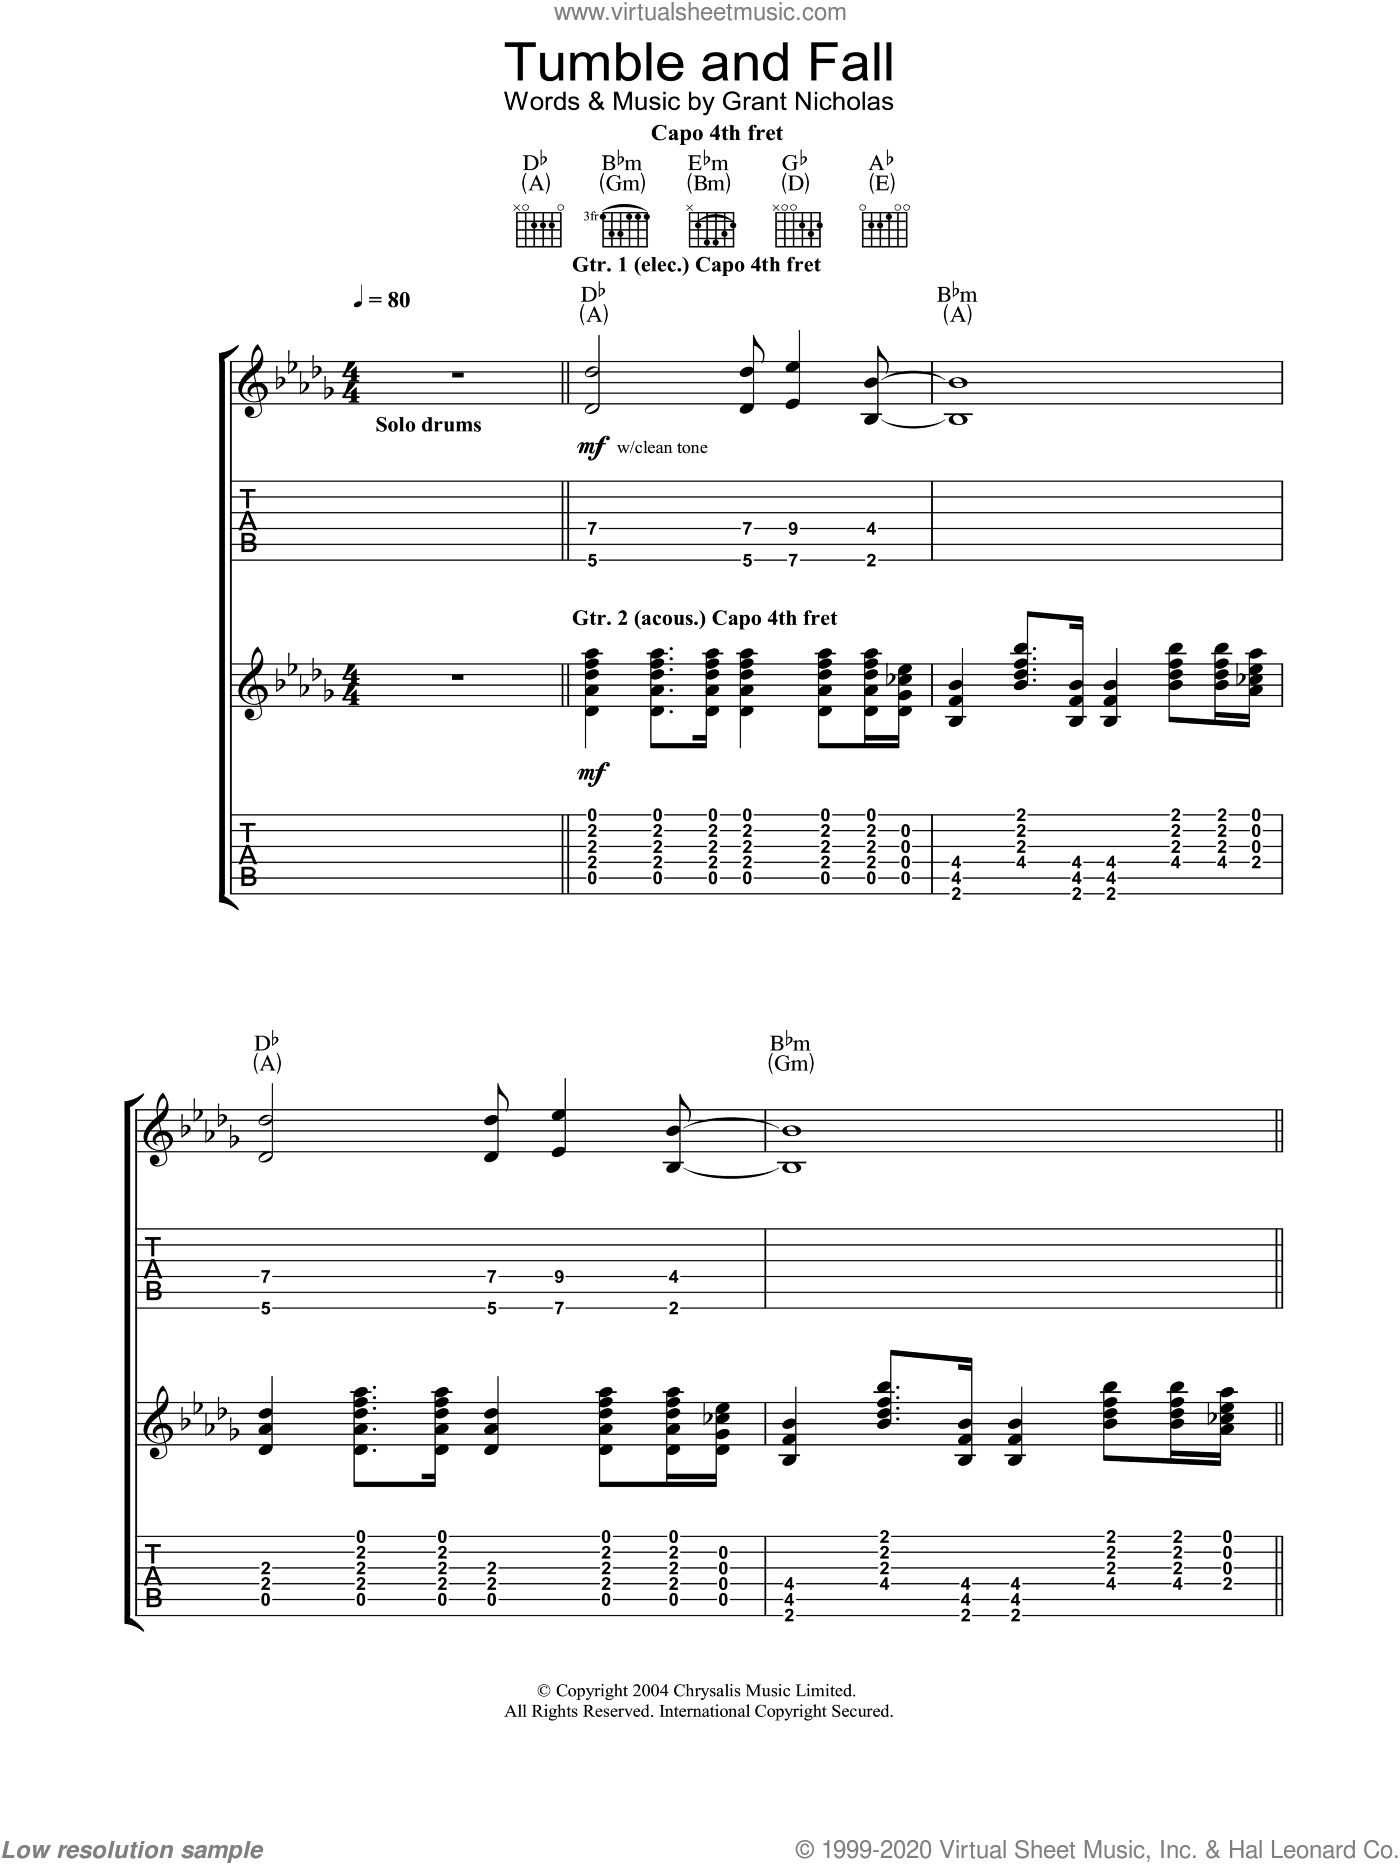 Tumble And Fall sheet music for guitar (tablature) by Nicholas Grant